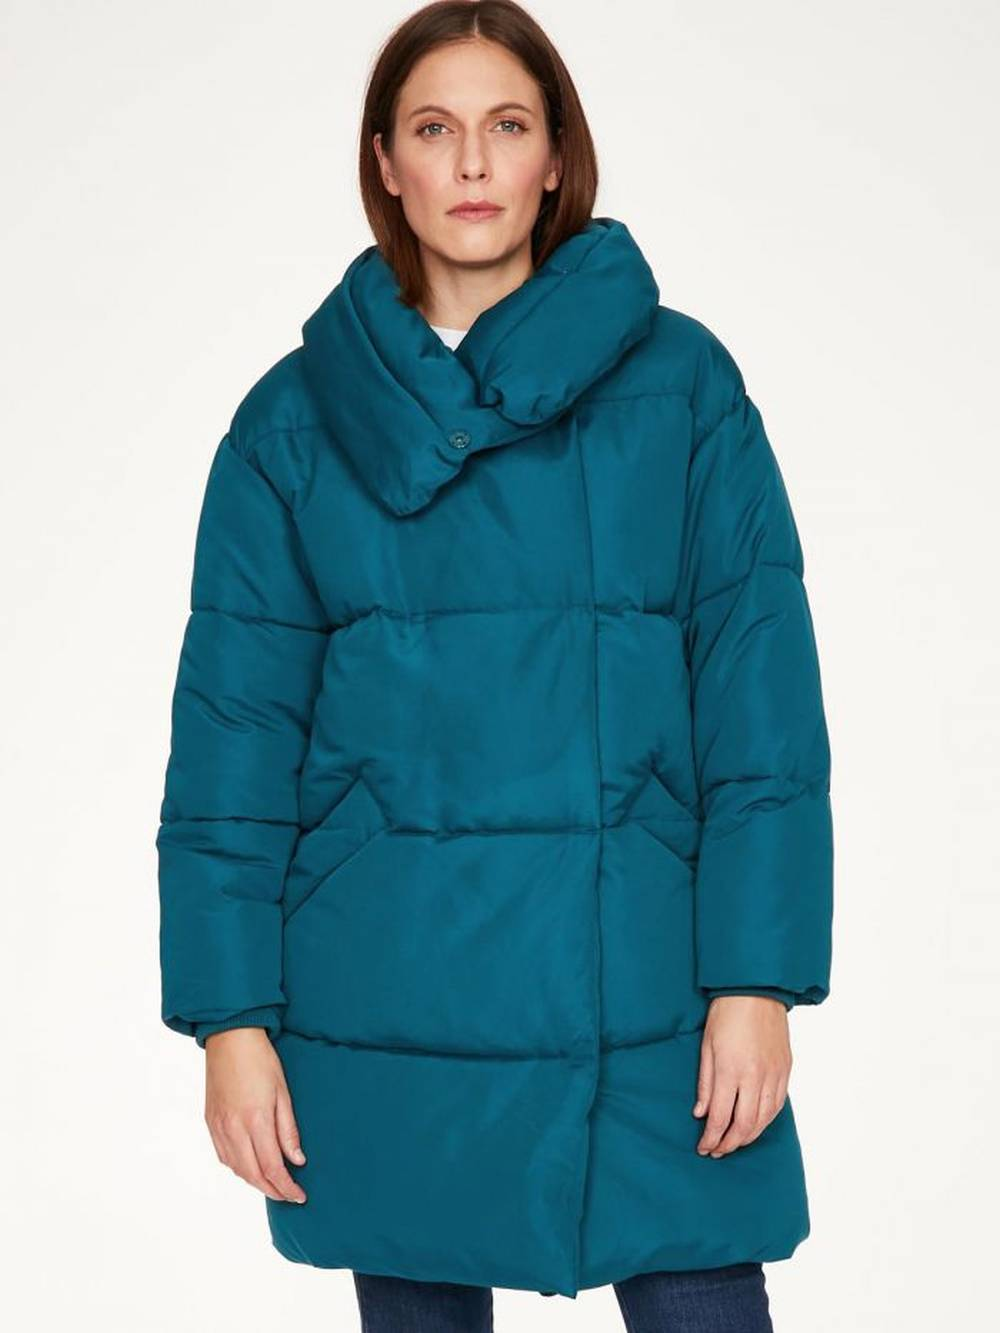 thought affordable sustainable puffer jackets